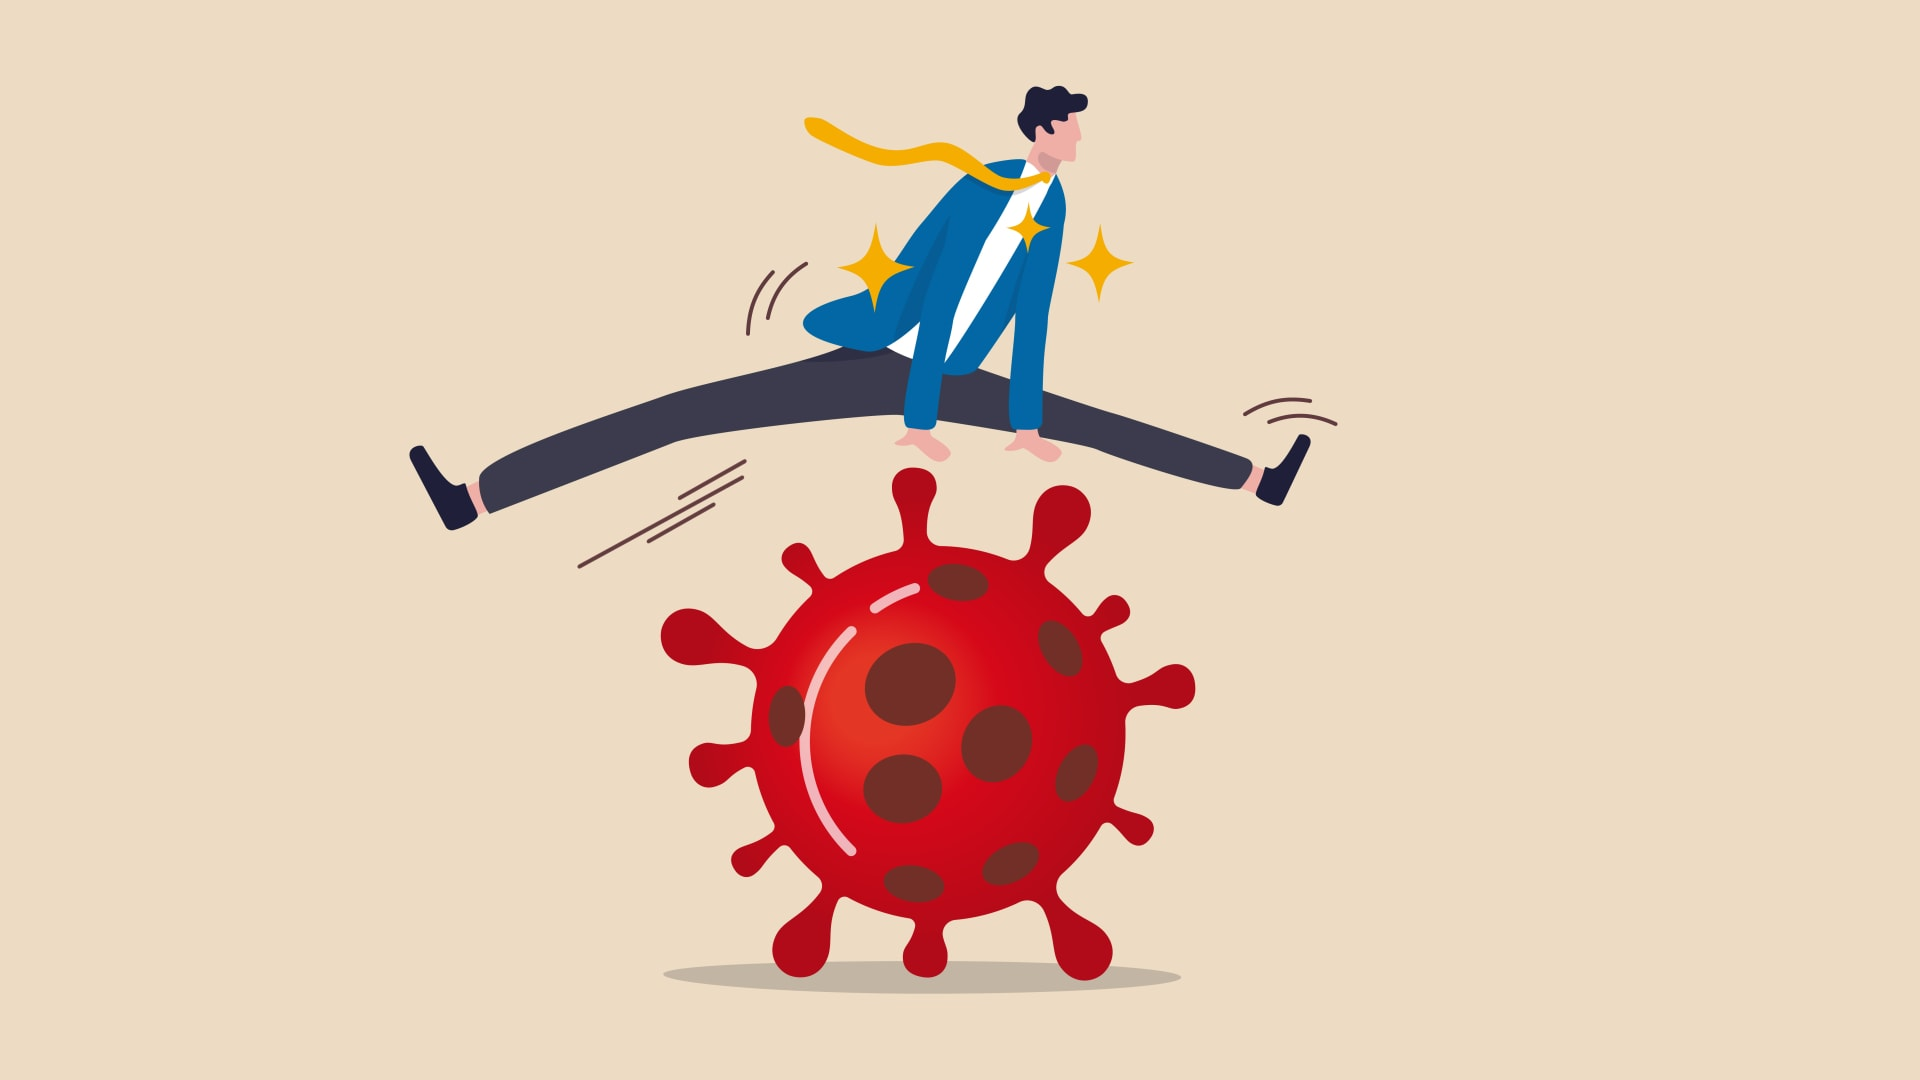 Why You Shouldn't Build Your Company Focused Solely on the Pandemic